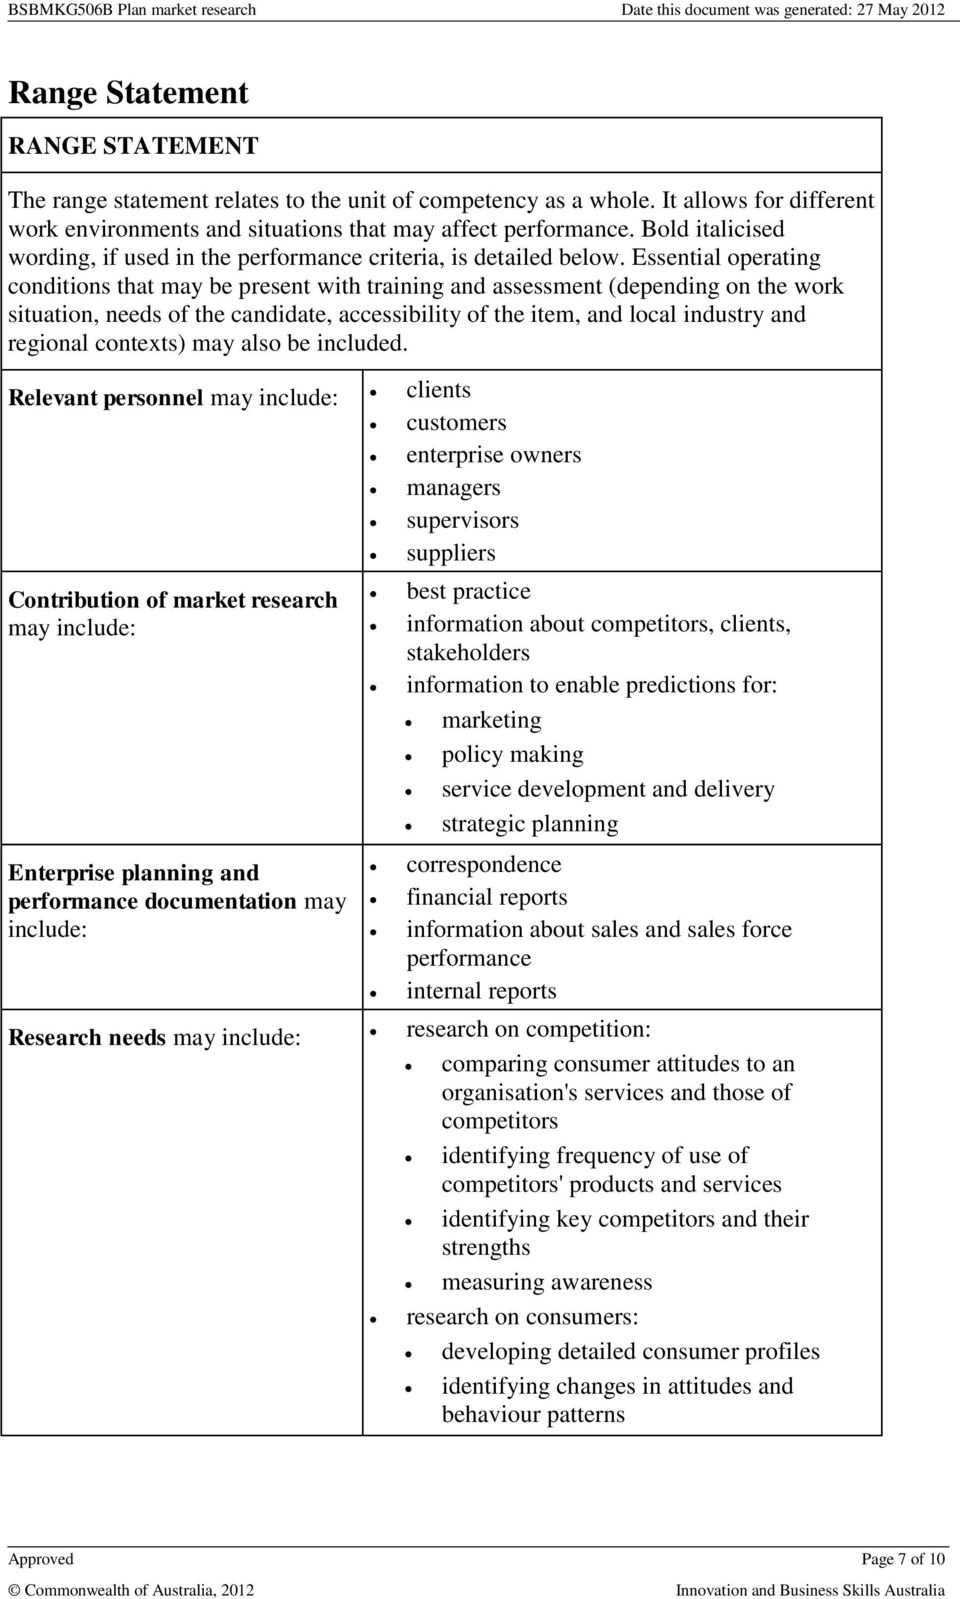 Essential operating conditions that may be present with training and assessment (depending on the work situation, needs of the candidate, accessibility of the item, and local industry and regional